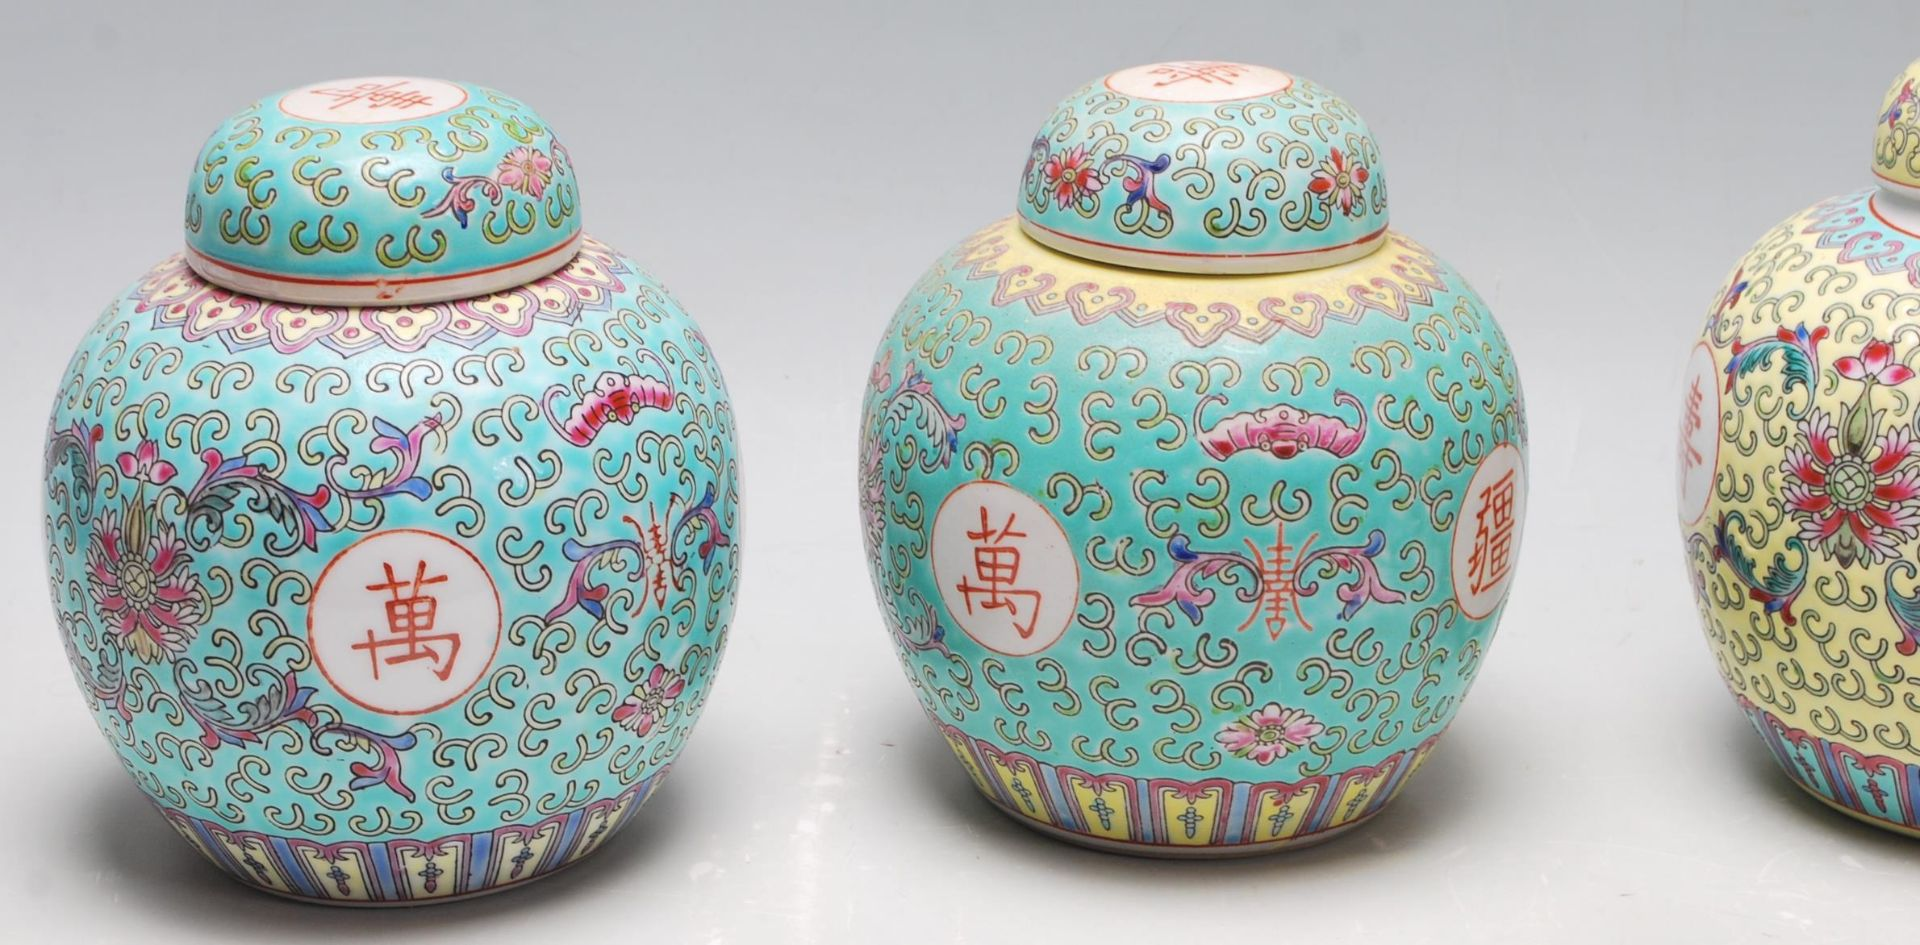 Los 140 - A group of 20th Century Chinese ginger jars to include six blue enamelled jars with scrolled